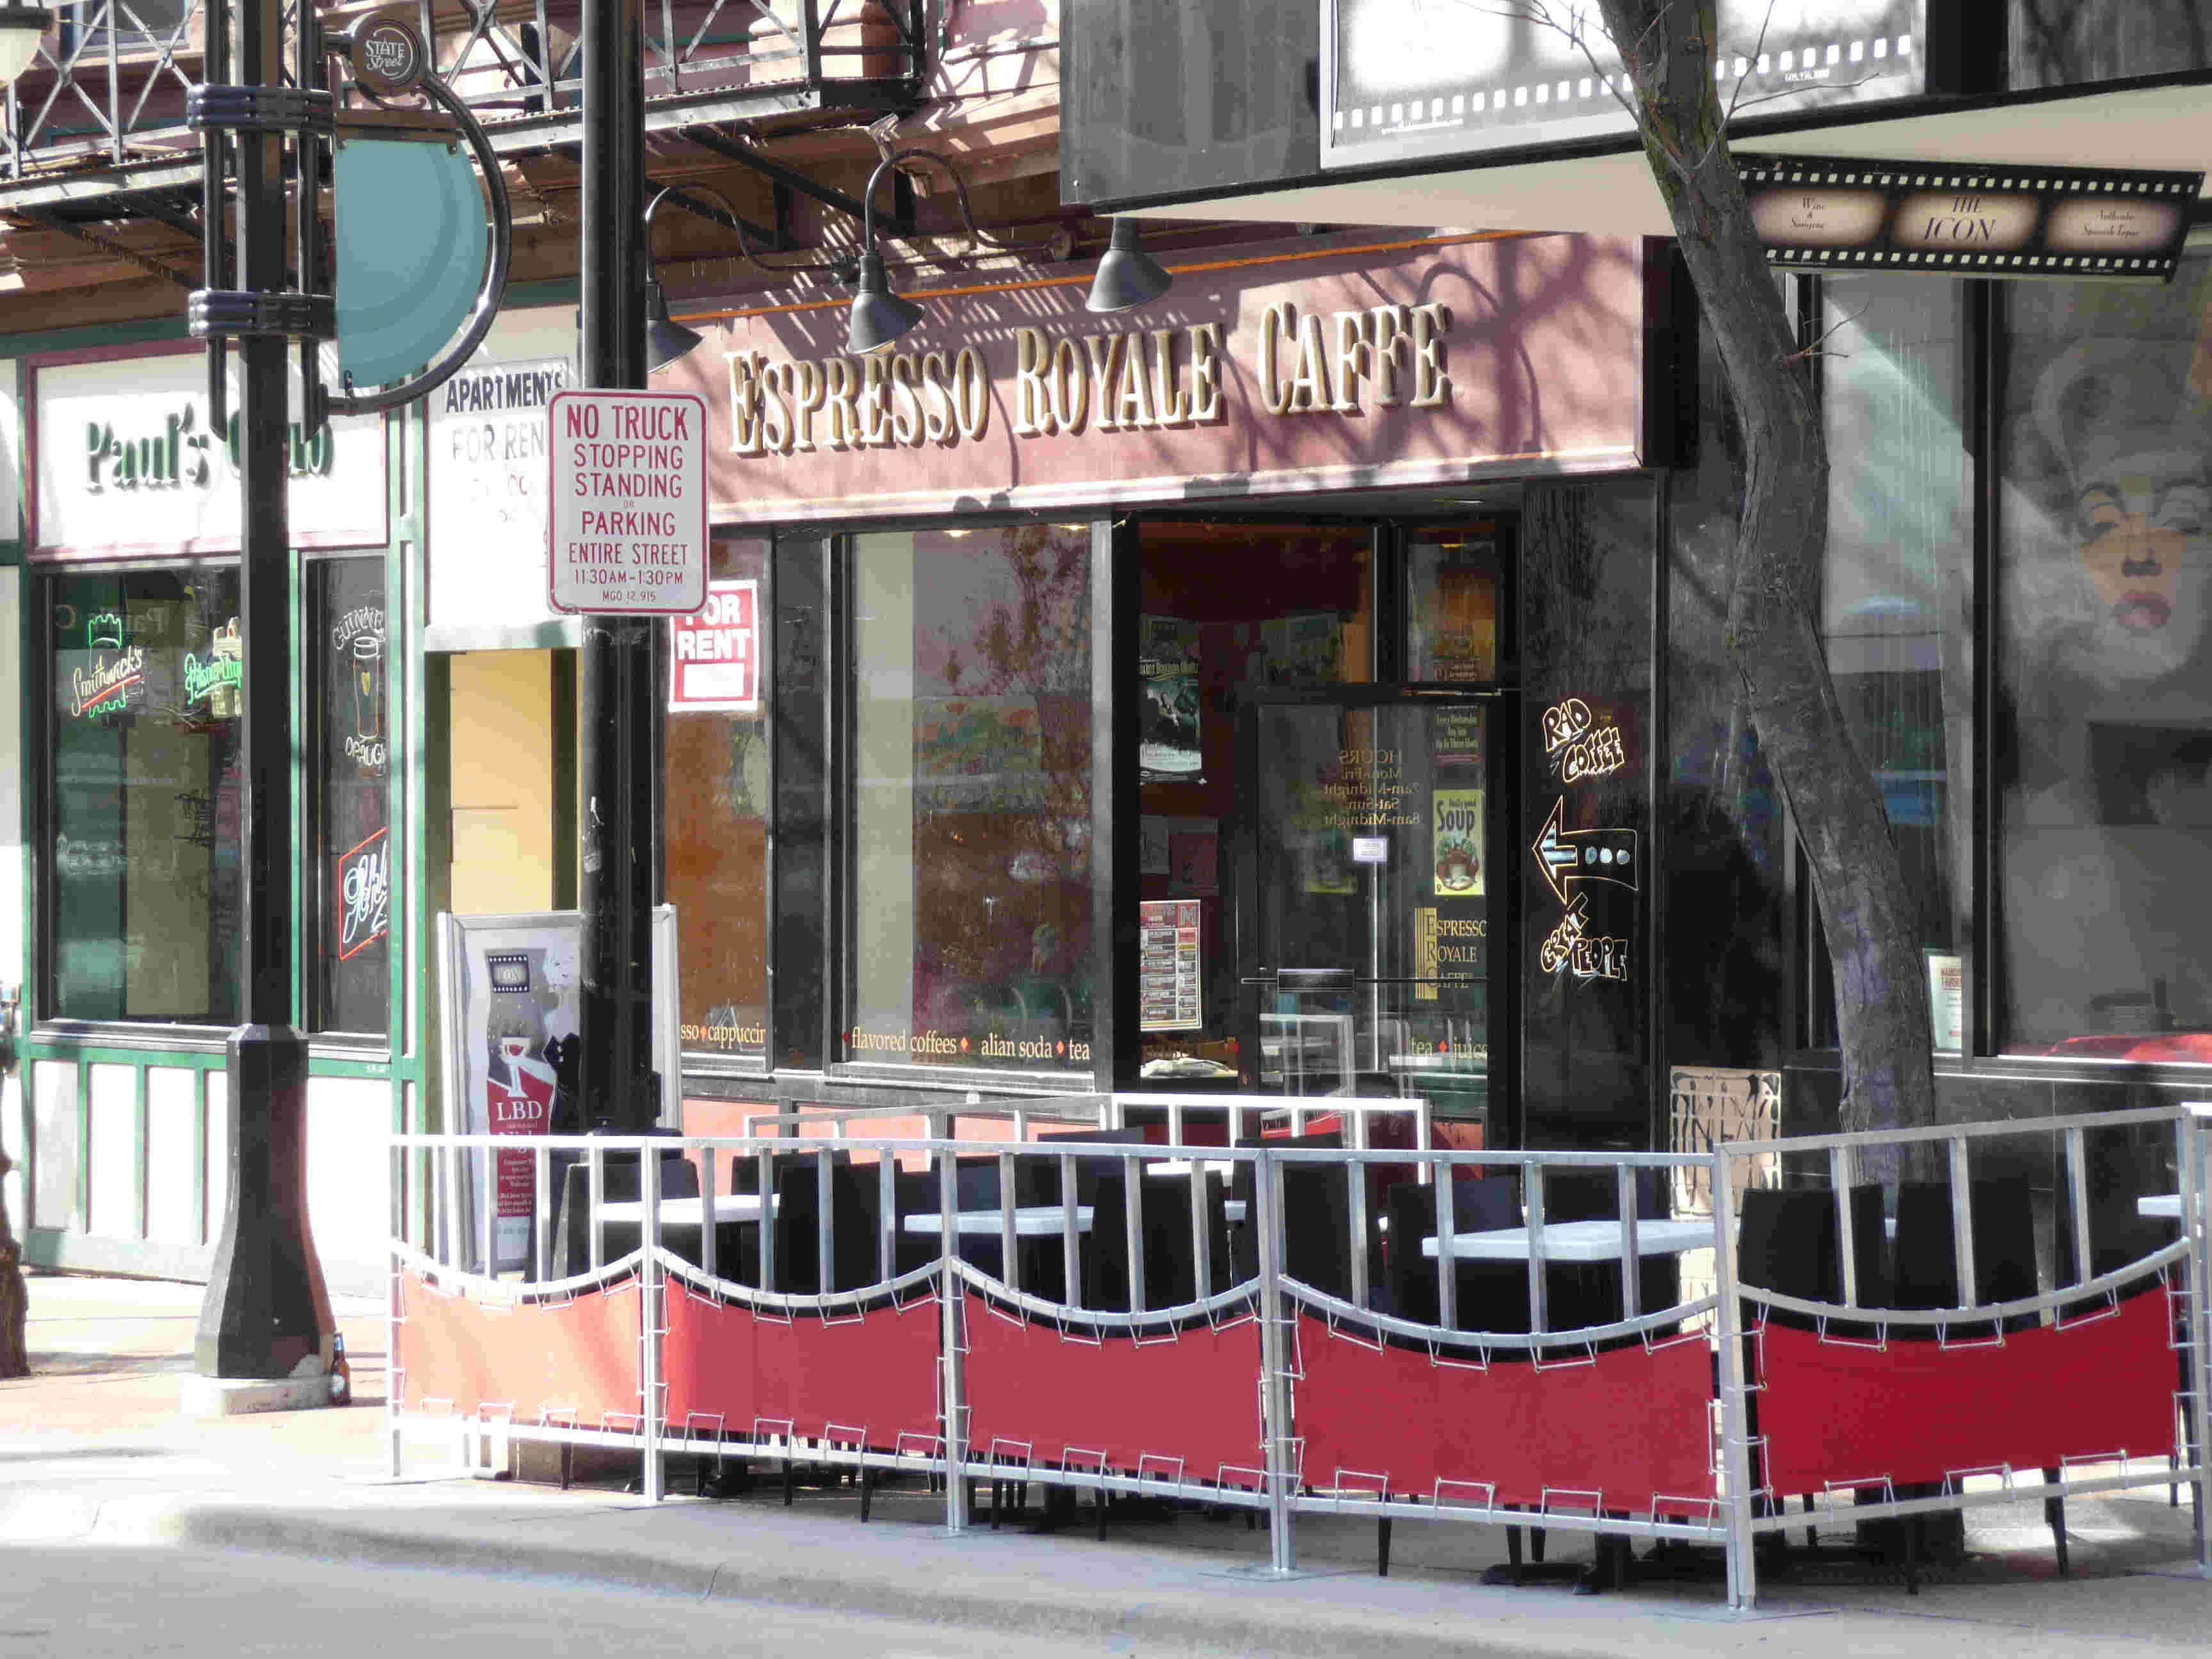 The Espresso Royal near the Capitol; the outdoor seating in the picture isn't theirs.